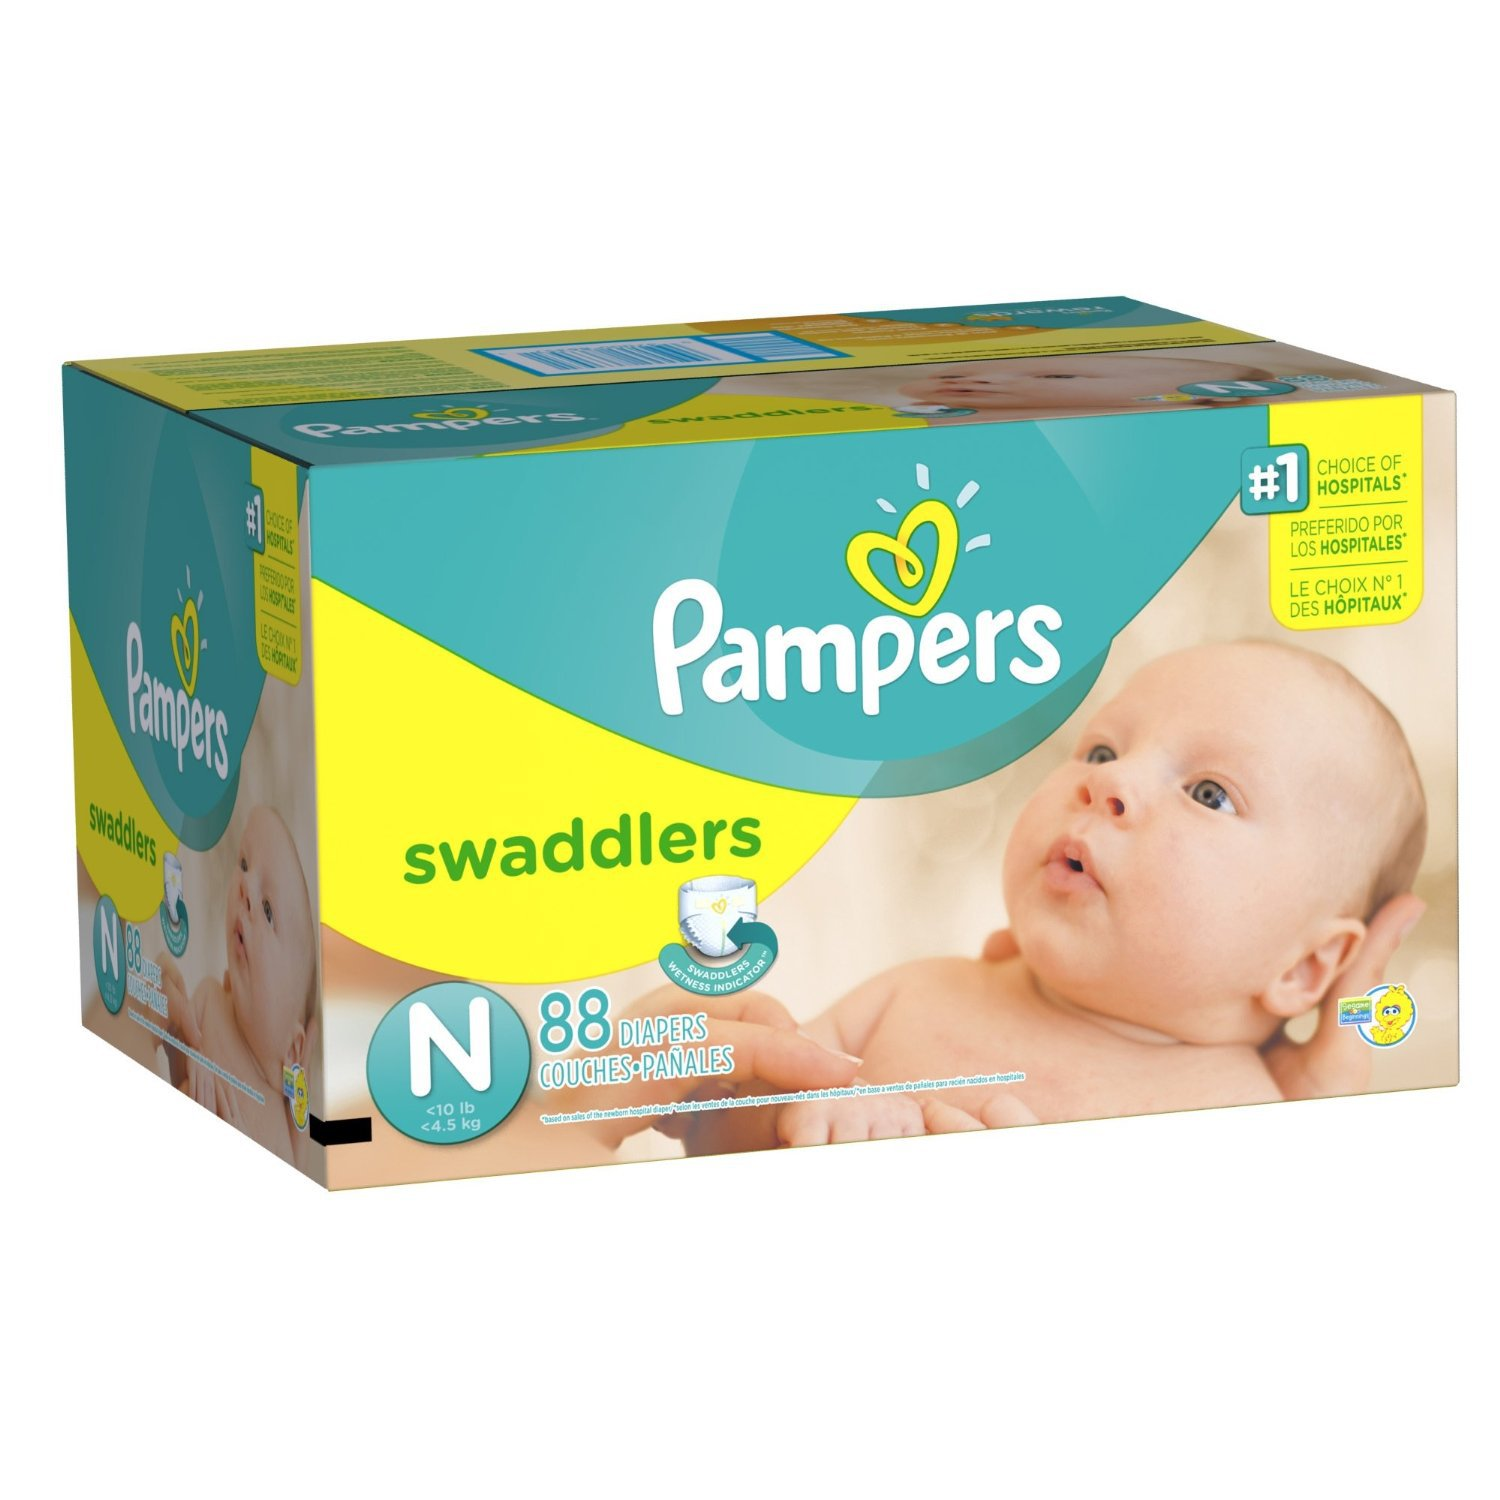 pampers swaddlers diapers size newborn 88 count free. Black Bedroom Furniture Sets. Home Design Ideas